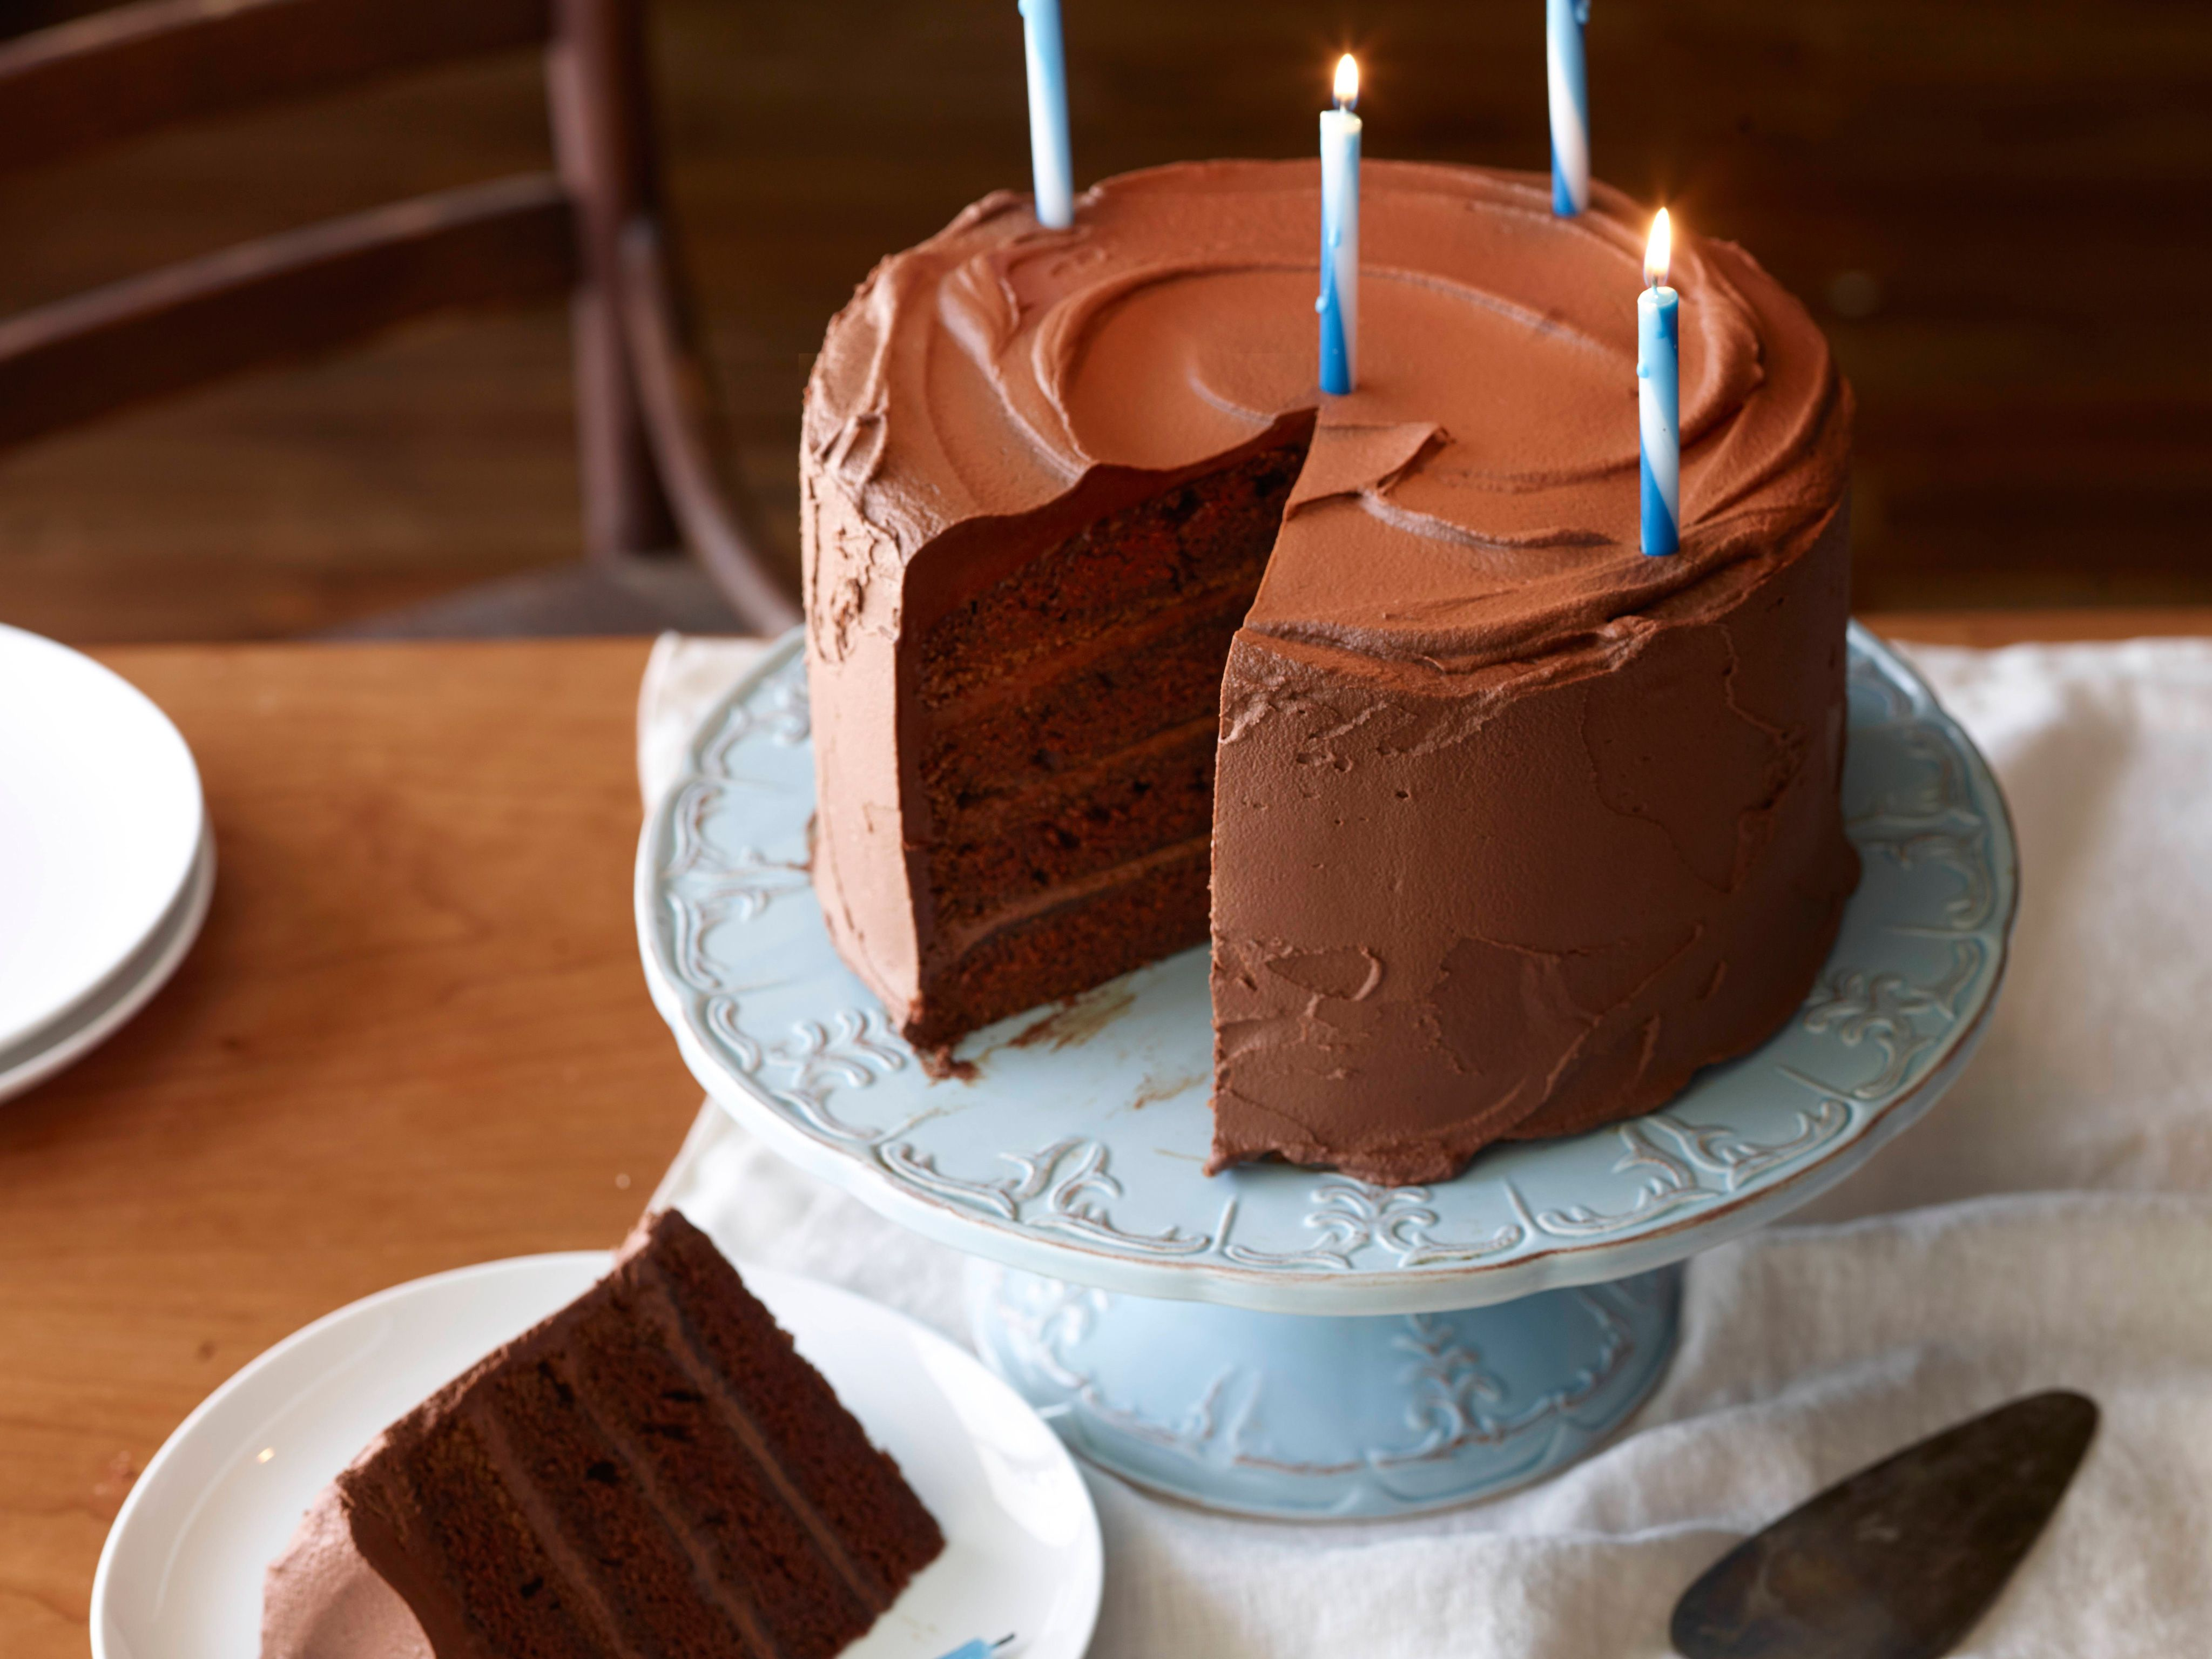 Awe Inspiring Big Chocolate Birthday Cake Recipe Ree Drummond Recipes Funny Birthday Cards Online Overcheapnameinfo